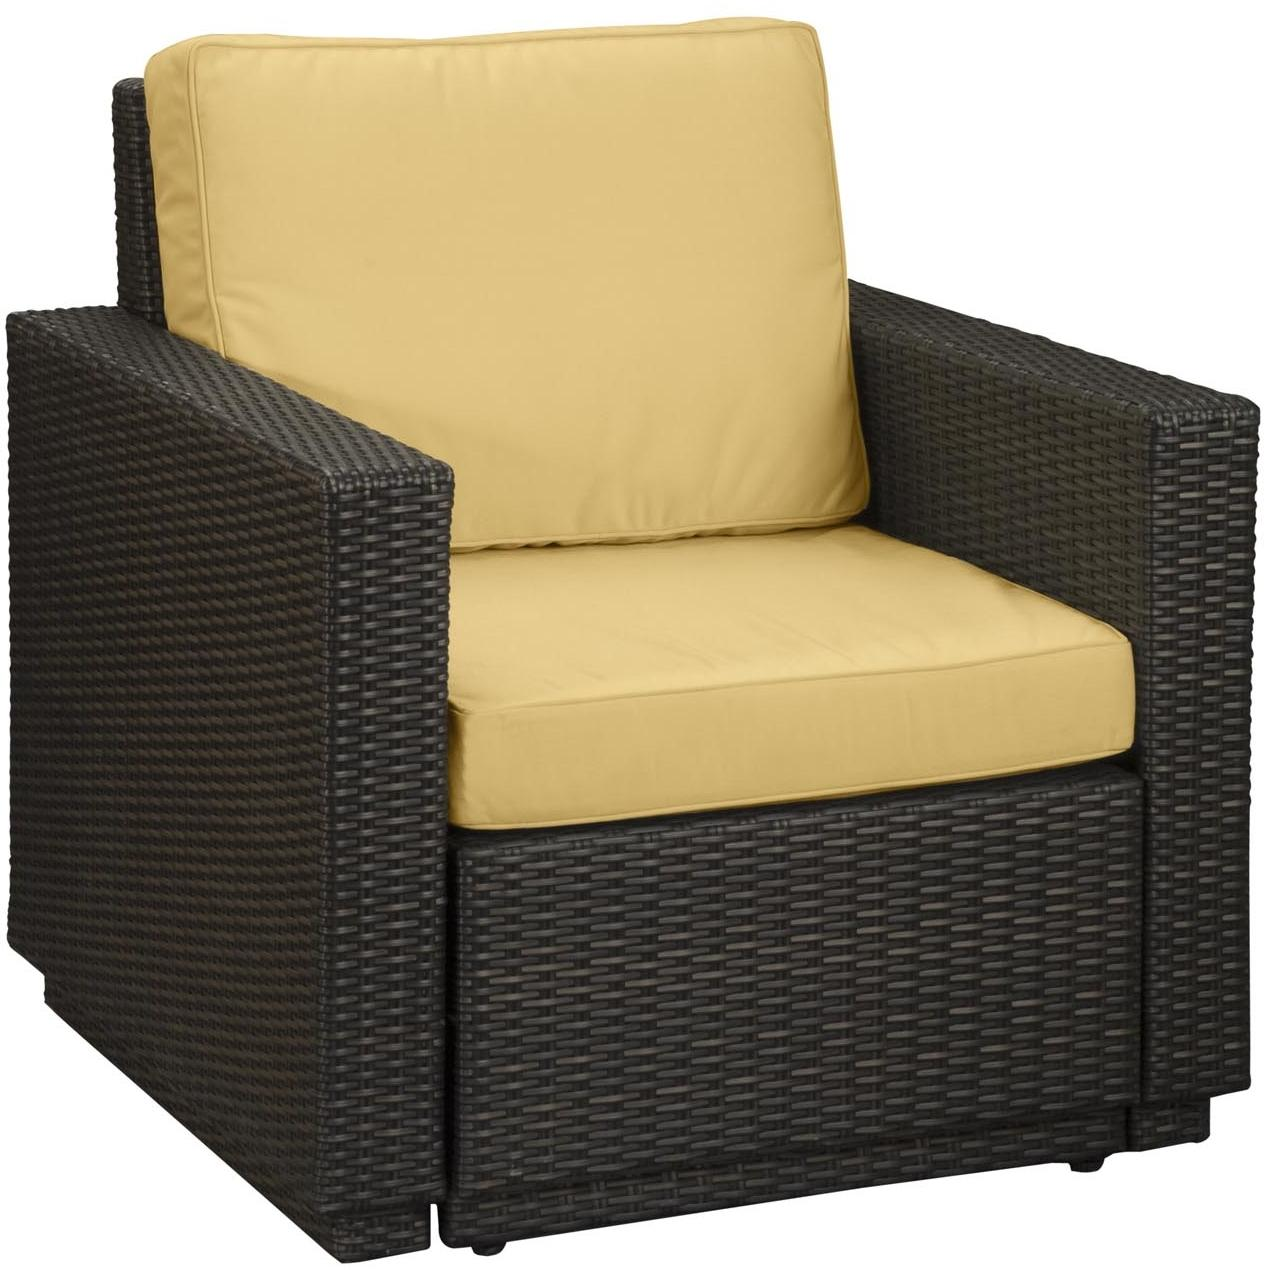 Home Styles Riviera Resin Wicker Outdoor Patio Arm Chair With Cushion - Harvest Fabric